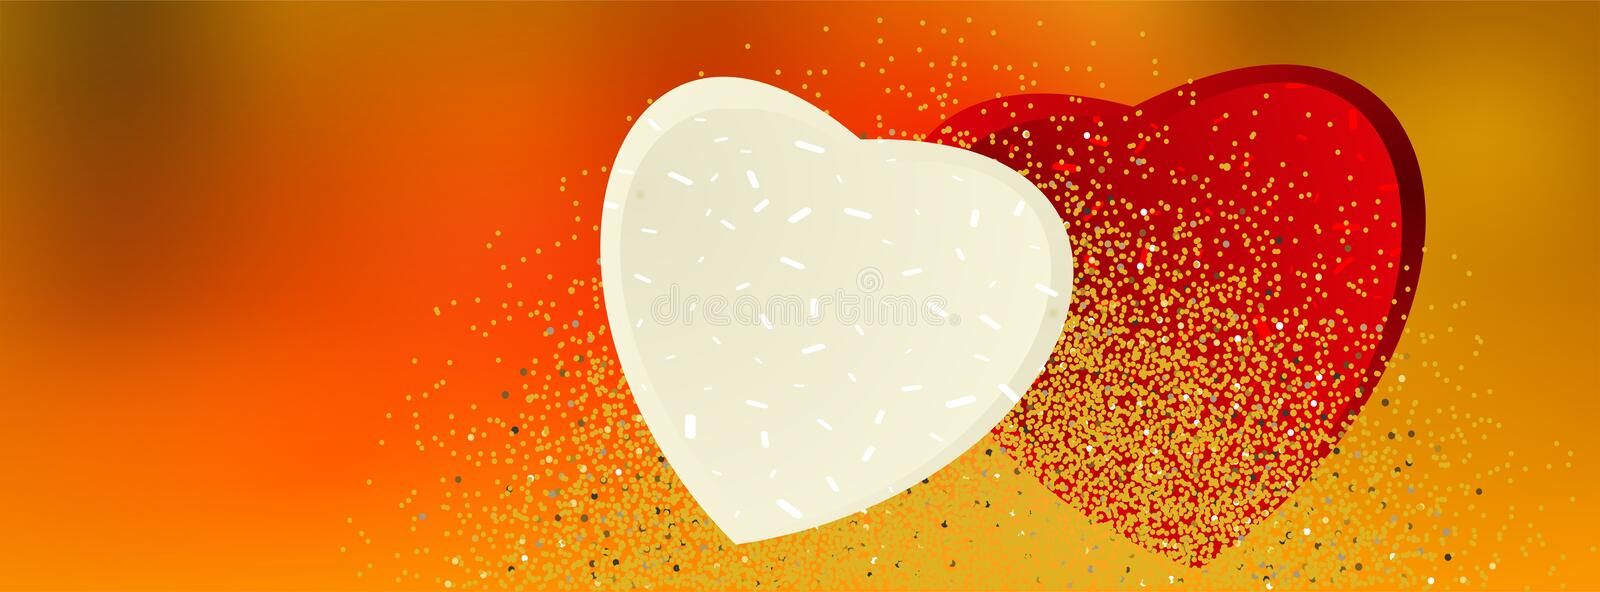 Valentine banners with hearts and golden glittering background - Facebook cover, -vector stock illustration